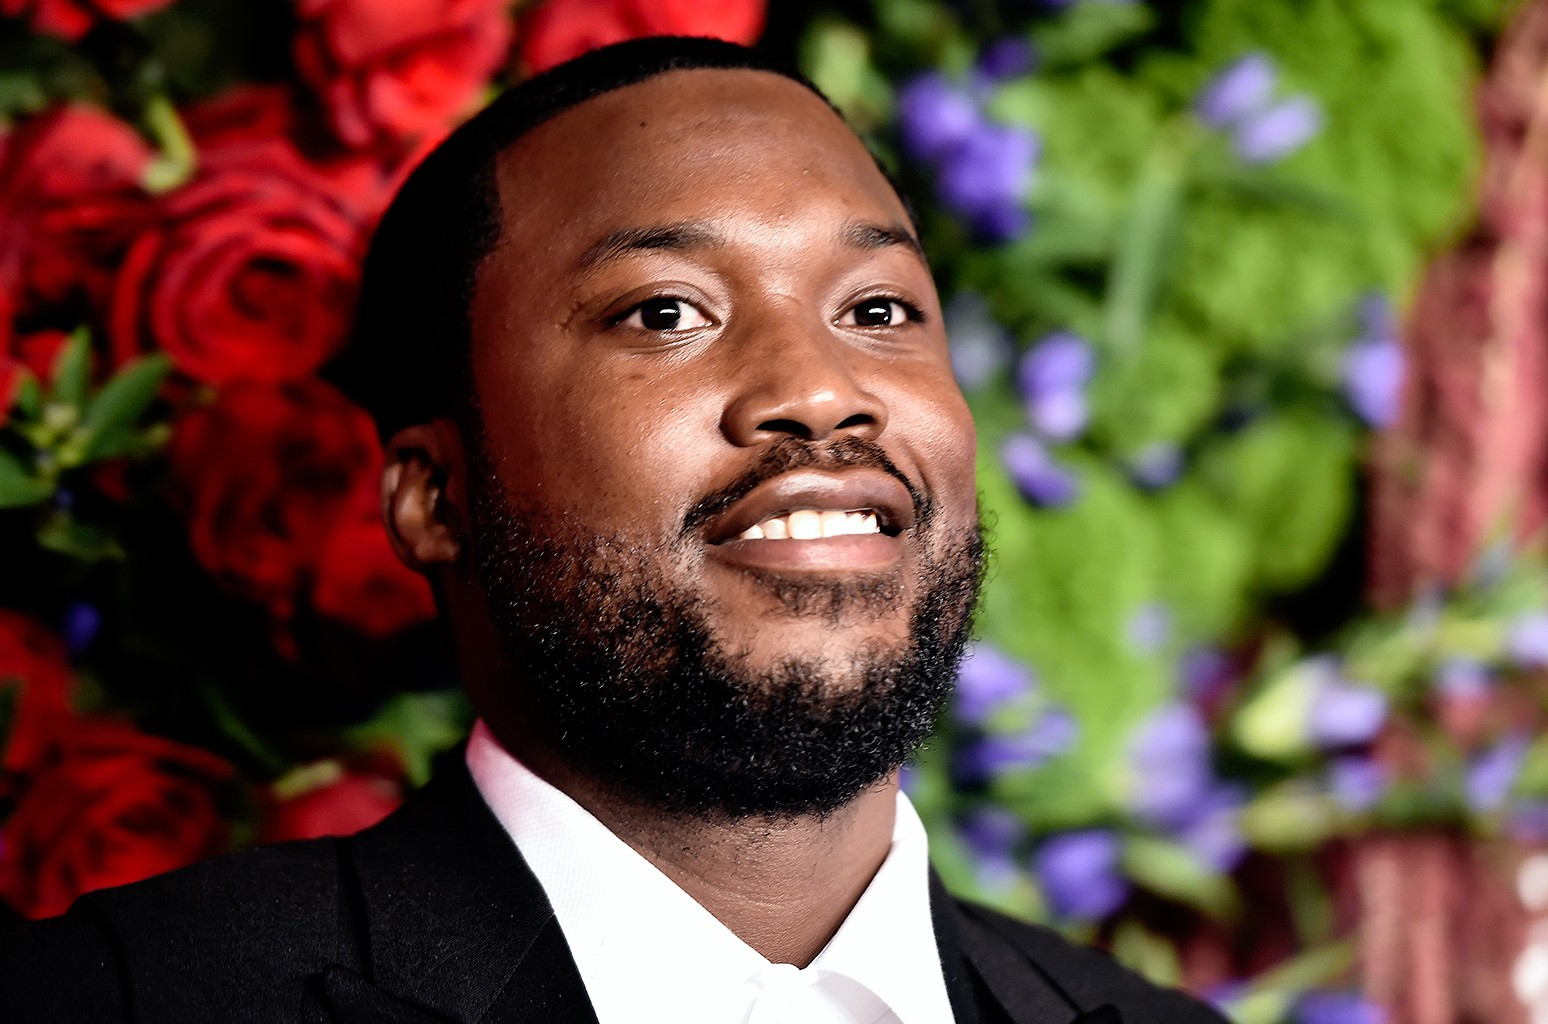 Meek Mill Says That Soon, Everyone Will Have To Pick A Side - See His Mysterious Message